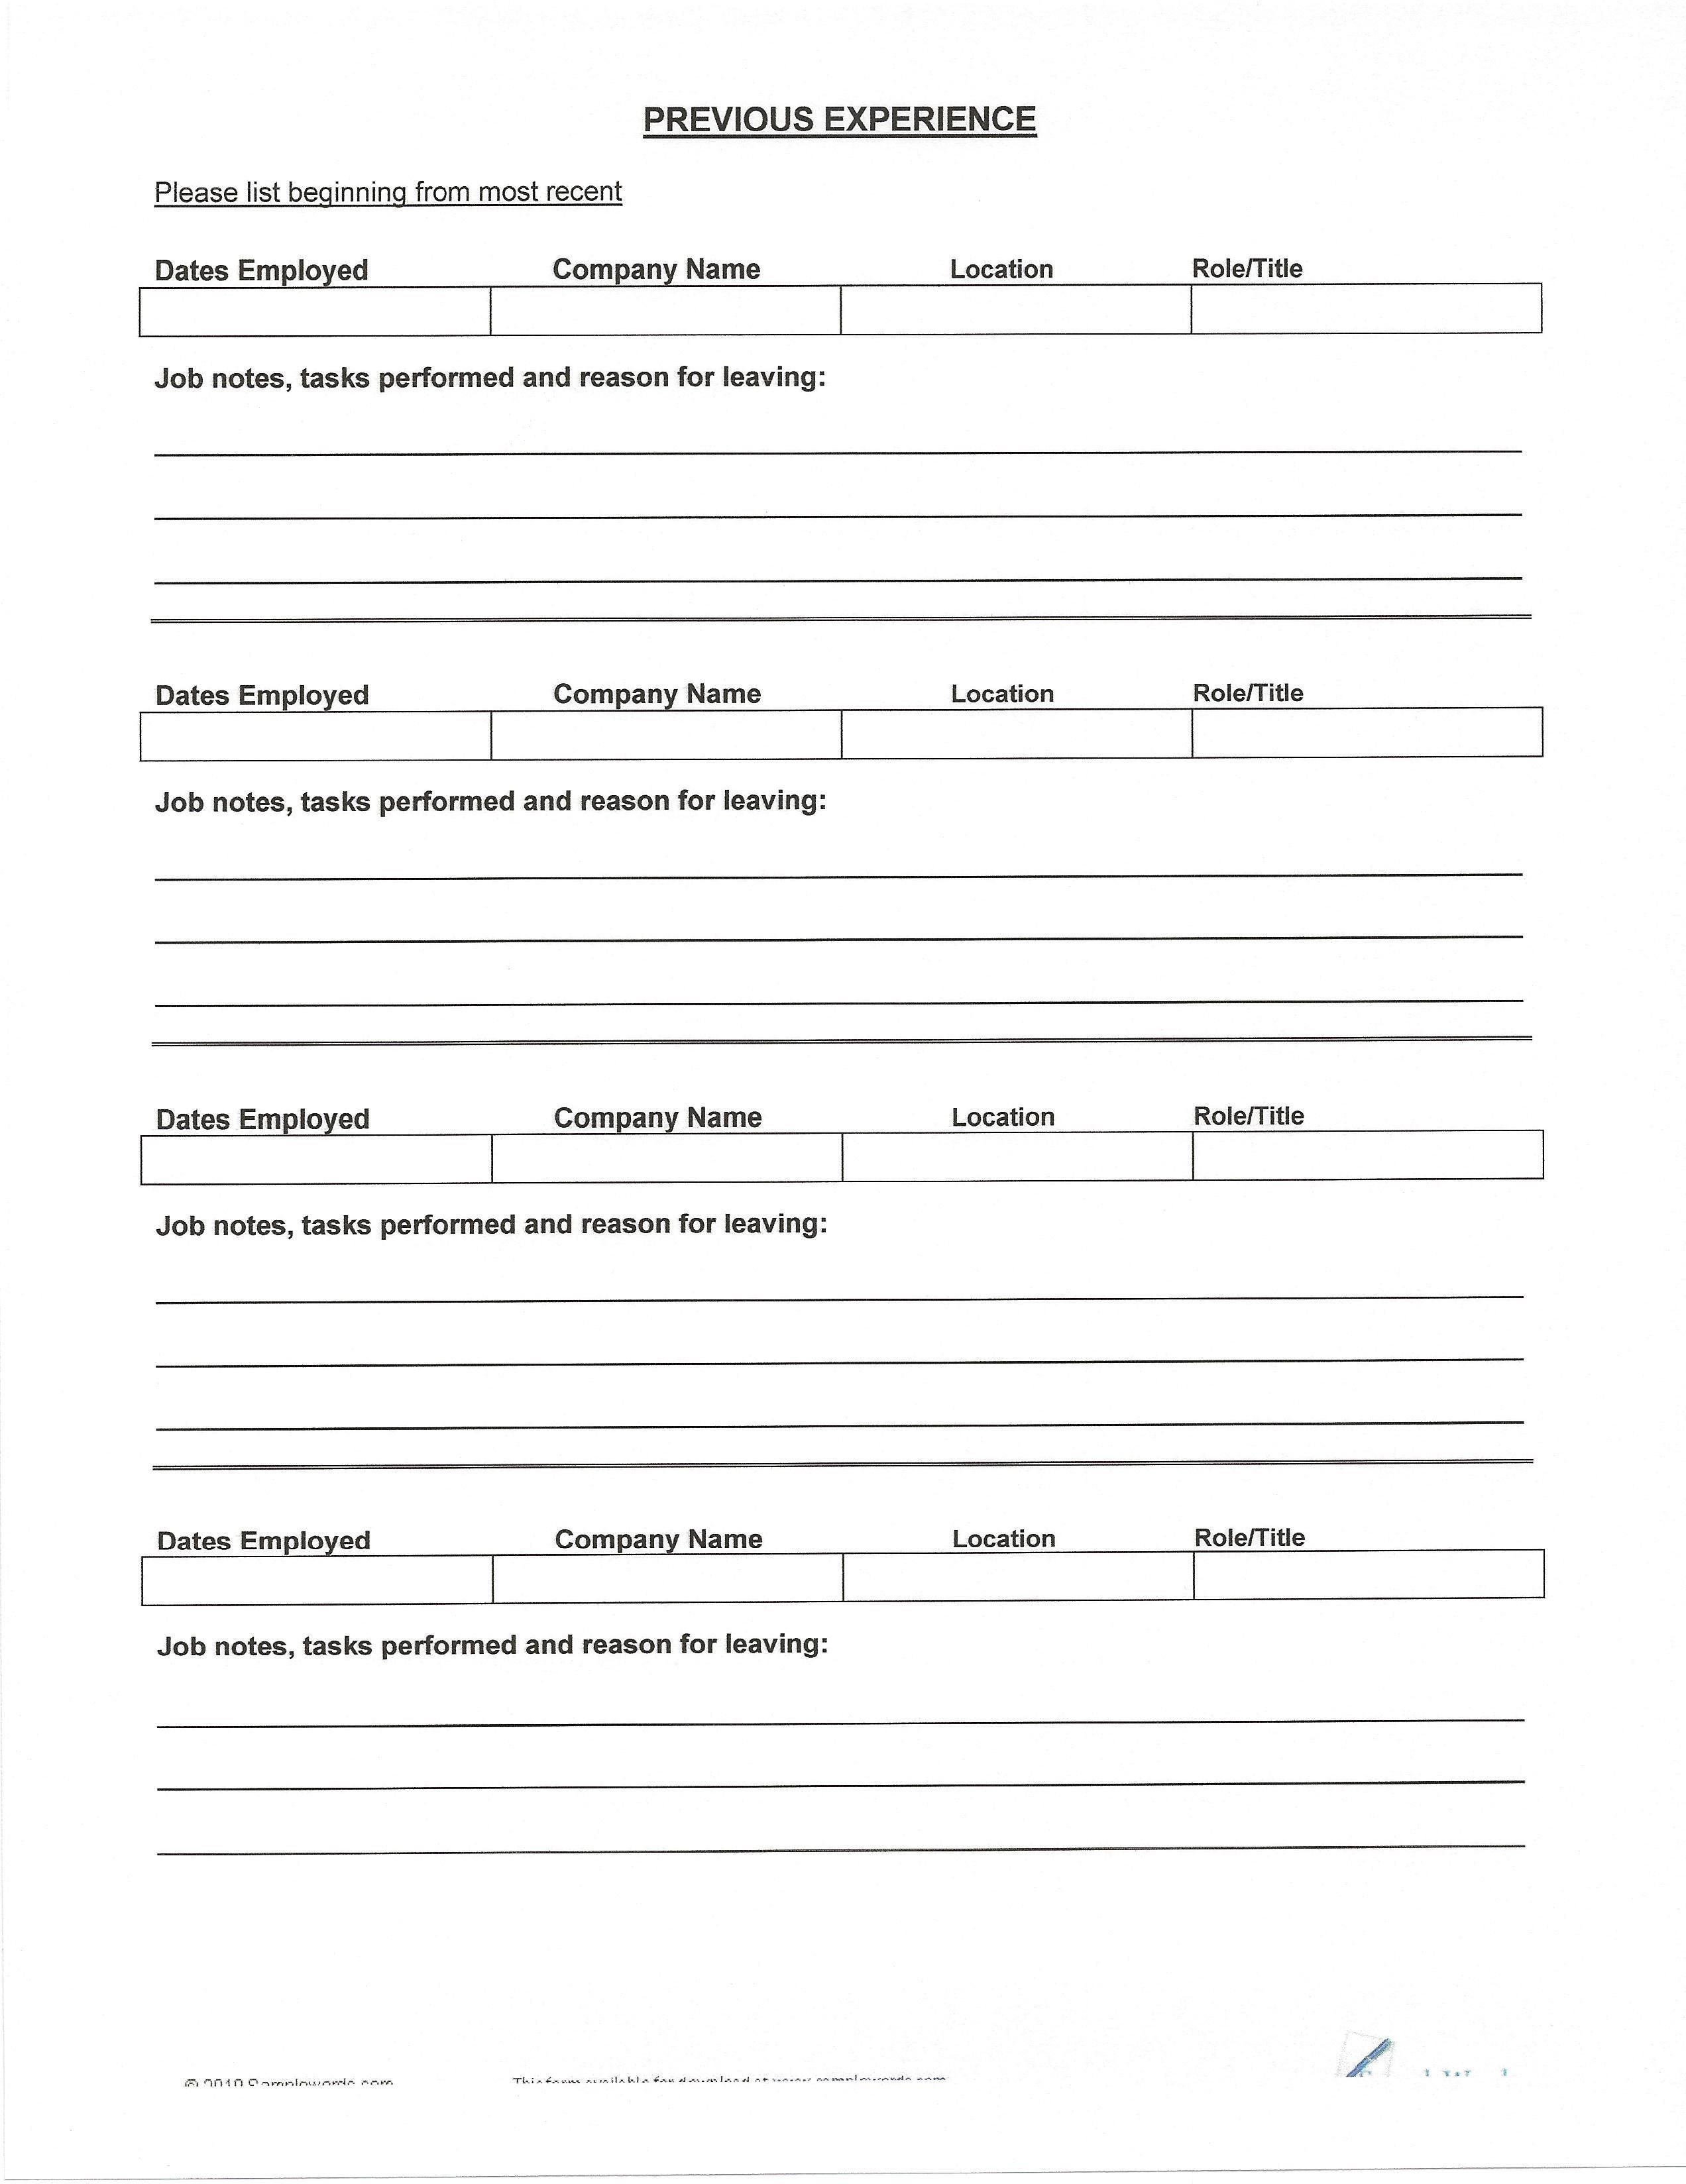 Resume Templates You Can Fill In Resume form, Resume